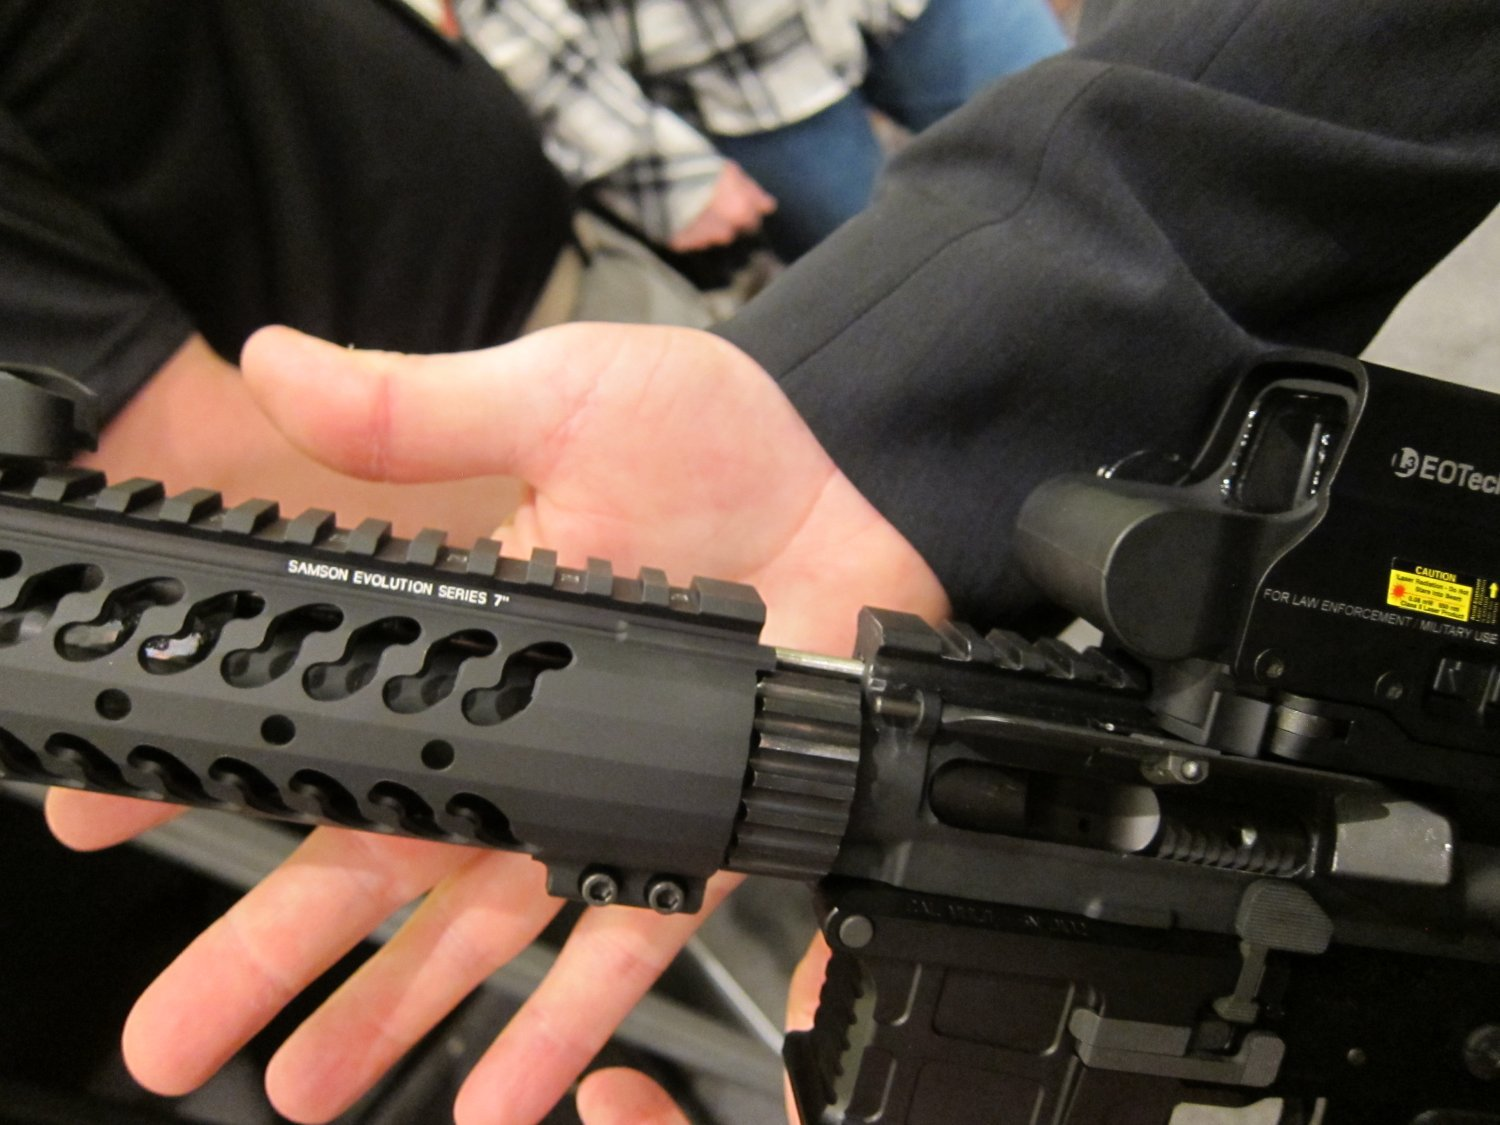 "Samson Evolution Series Rail System SHOT SHOW 2011 2 <!  :en  >Samson Evolution Series Rail System Outfitted Adams Arms 7.5"" PDW Piston AR SBR for Dynamic Close Quarters Battle (CQB) and Tactical Training: DARC Ready!<!  :  >"